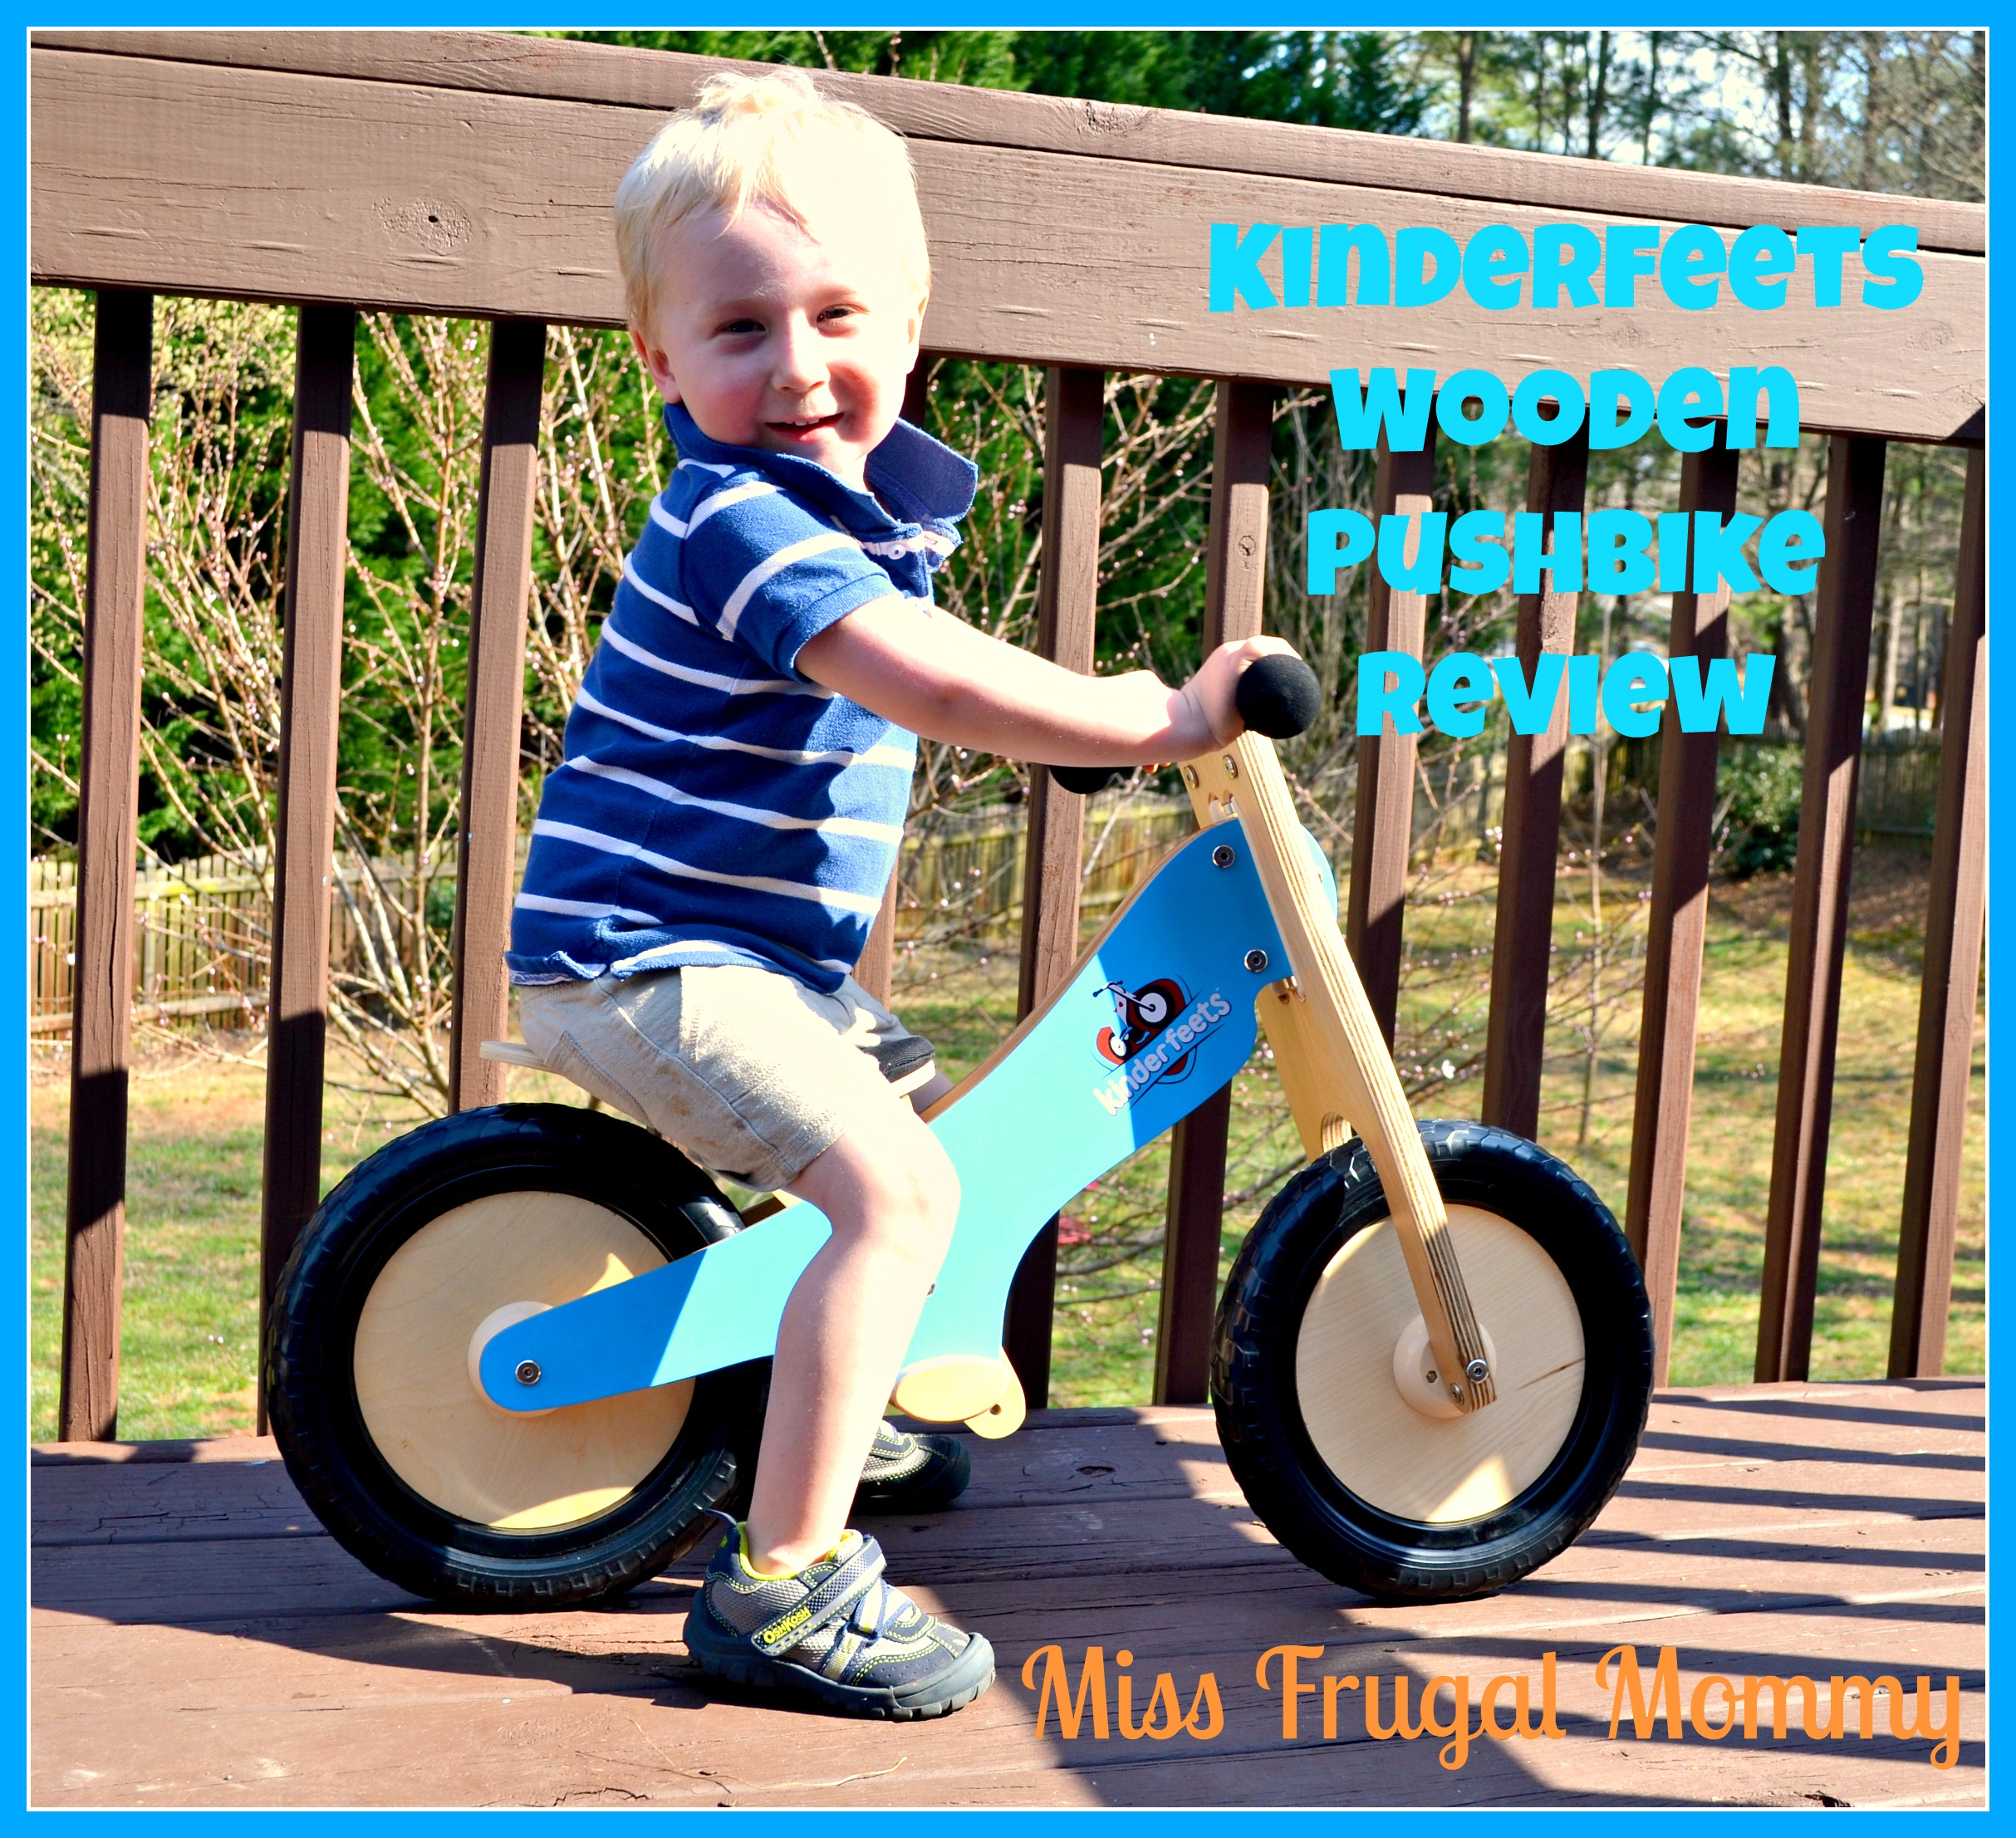 Kinderfeets: The Wooden Pushbike Review